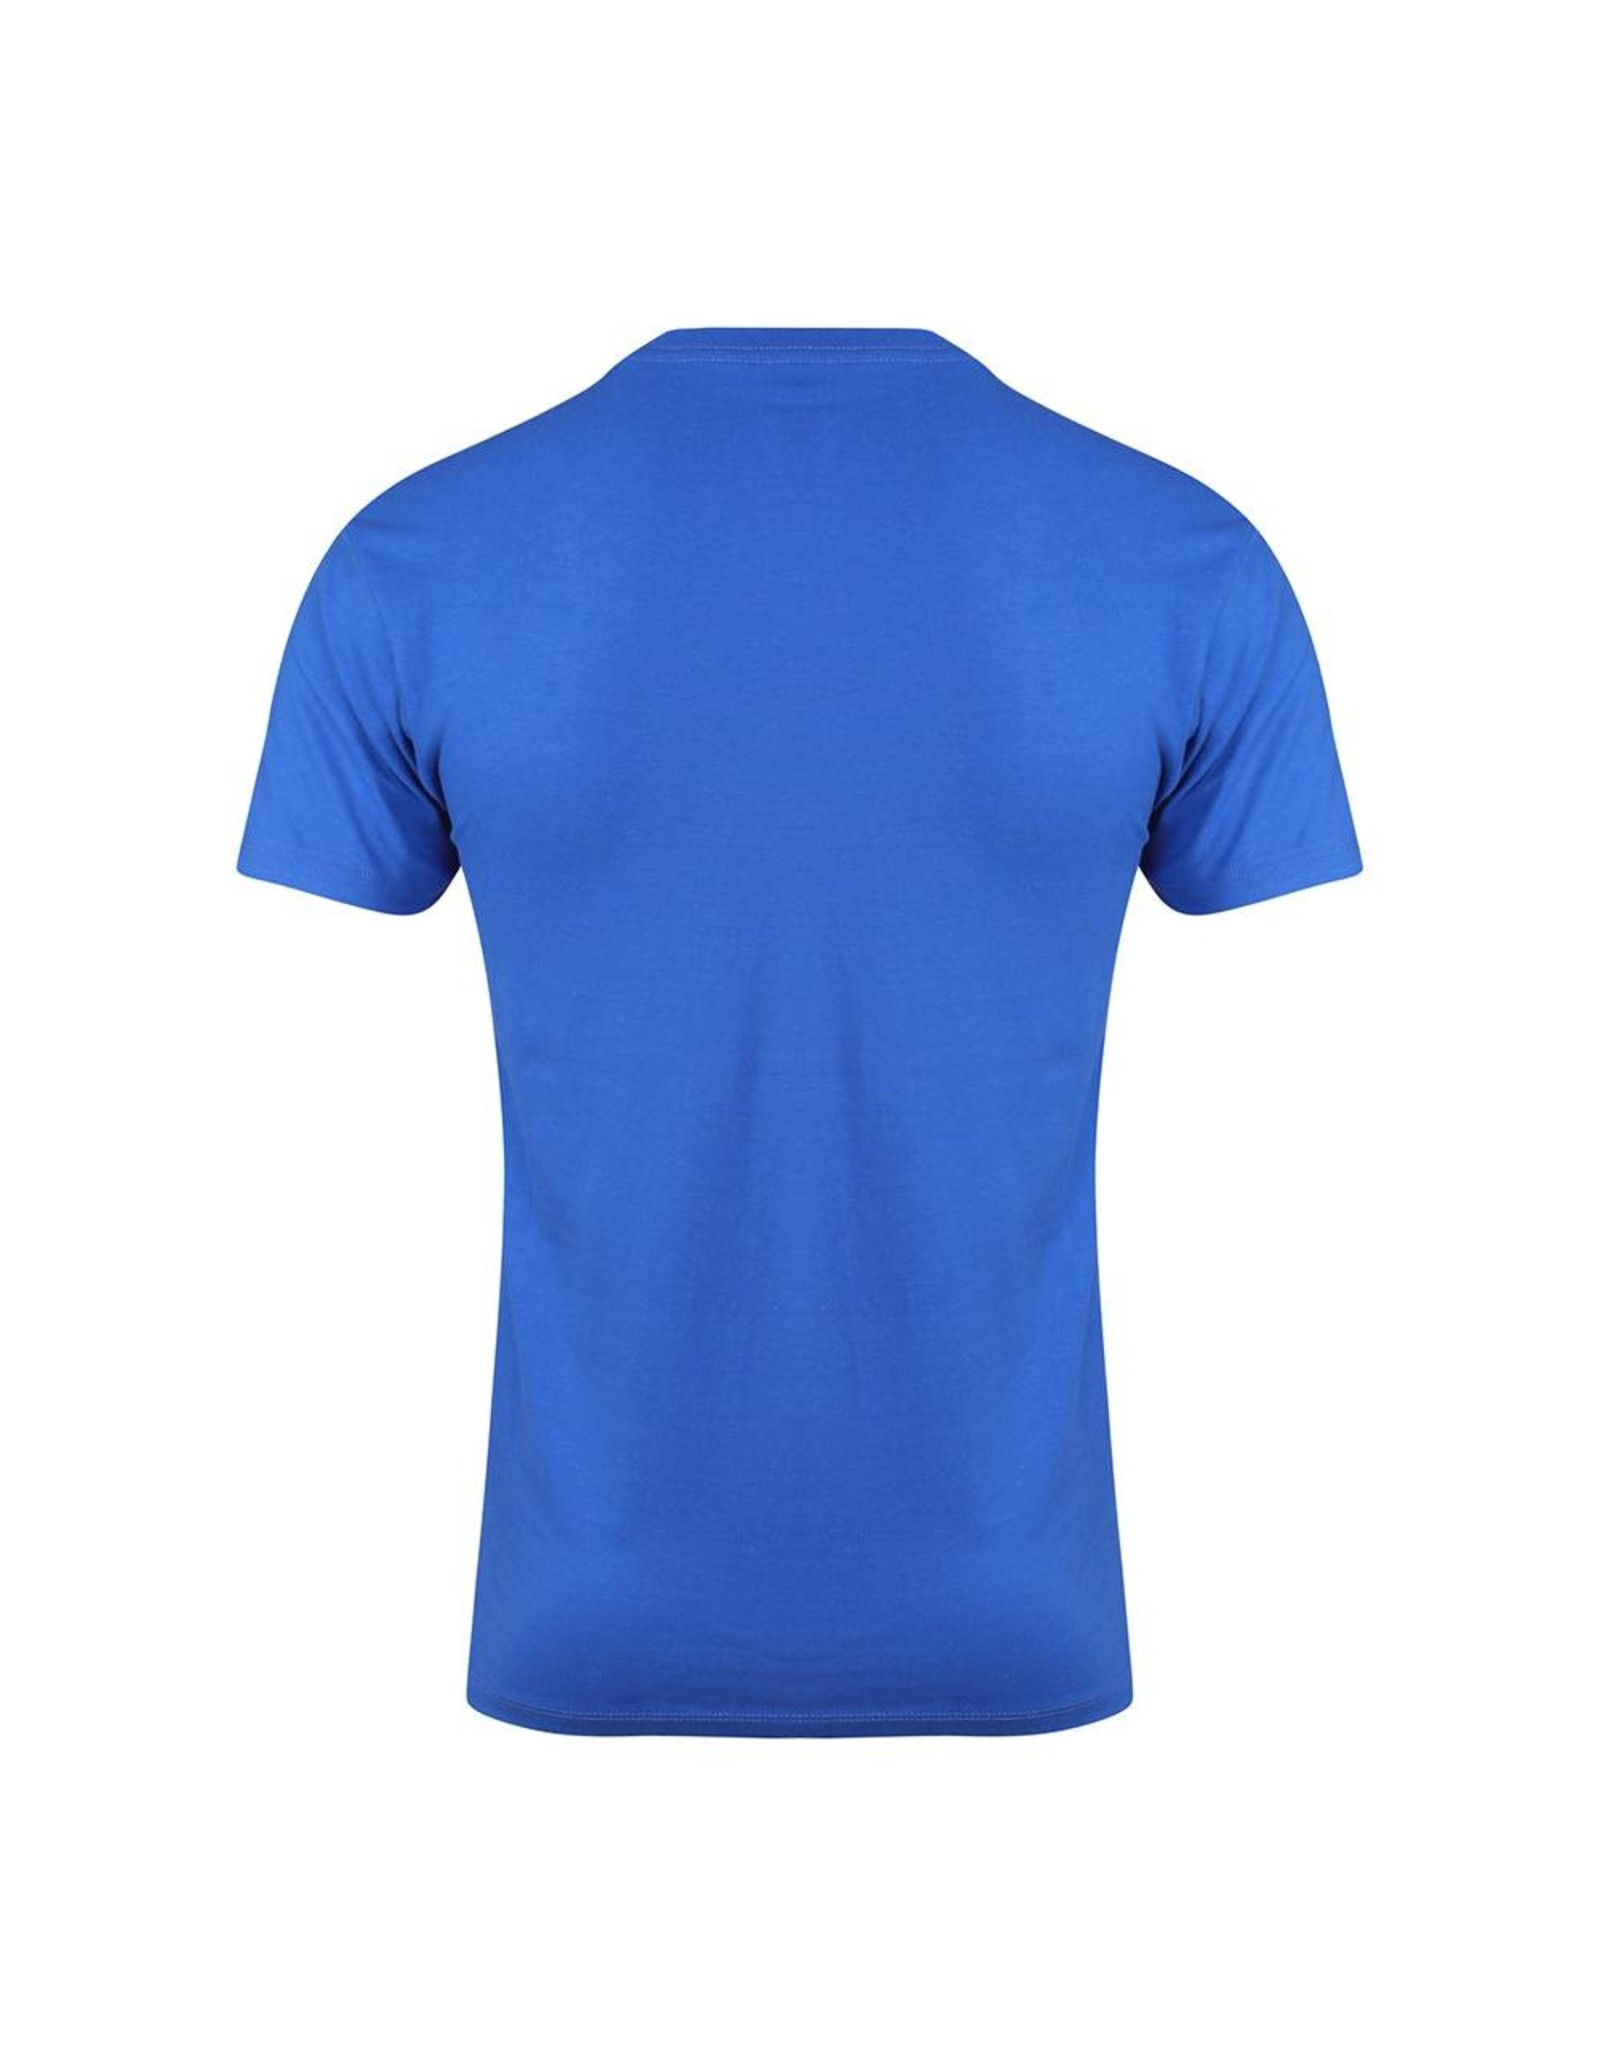 Gold's Gym Crew Neck T-shirt with Large Muscle Joe Print - Royal